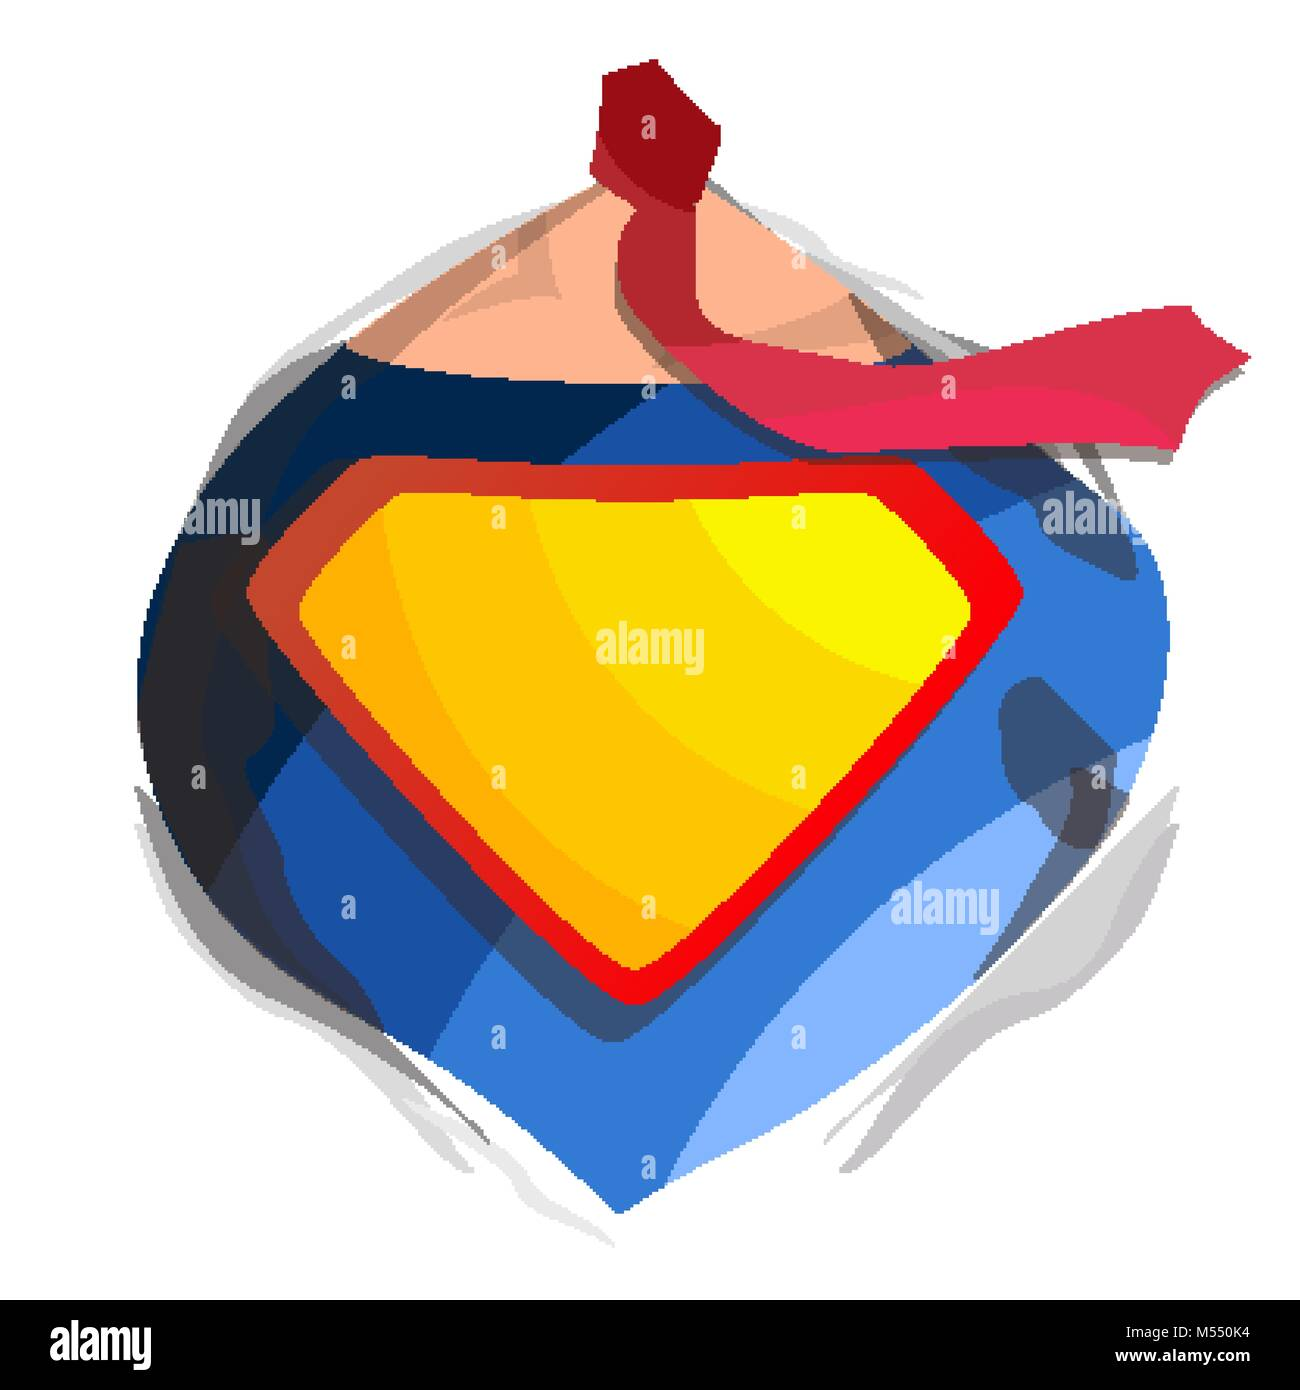 Superhero Logo Vector Yellow Red Shield Emblem Template Flat